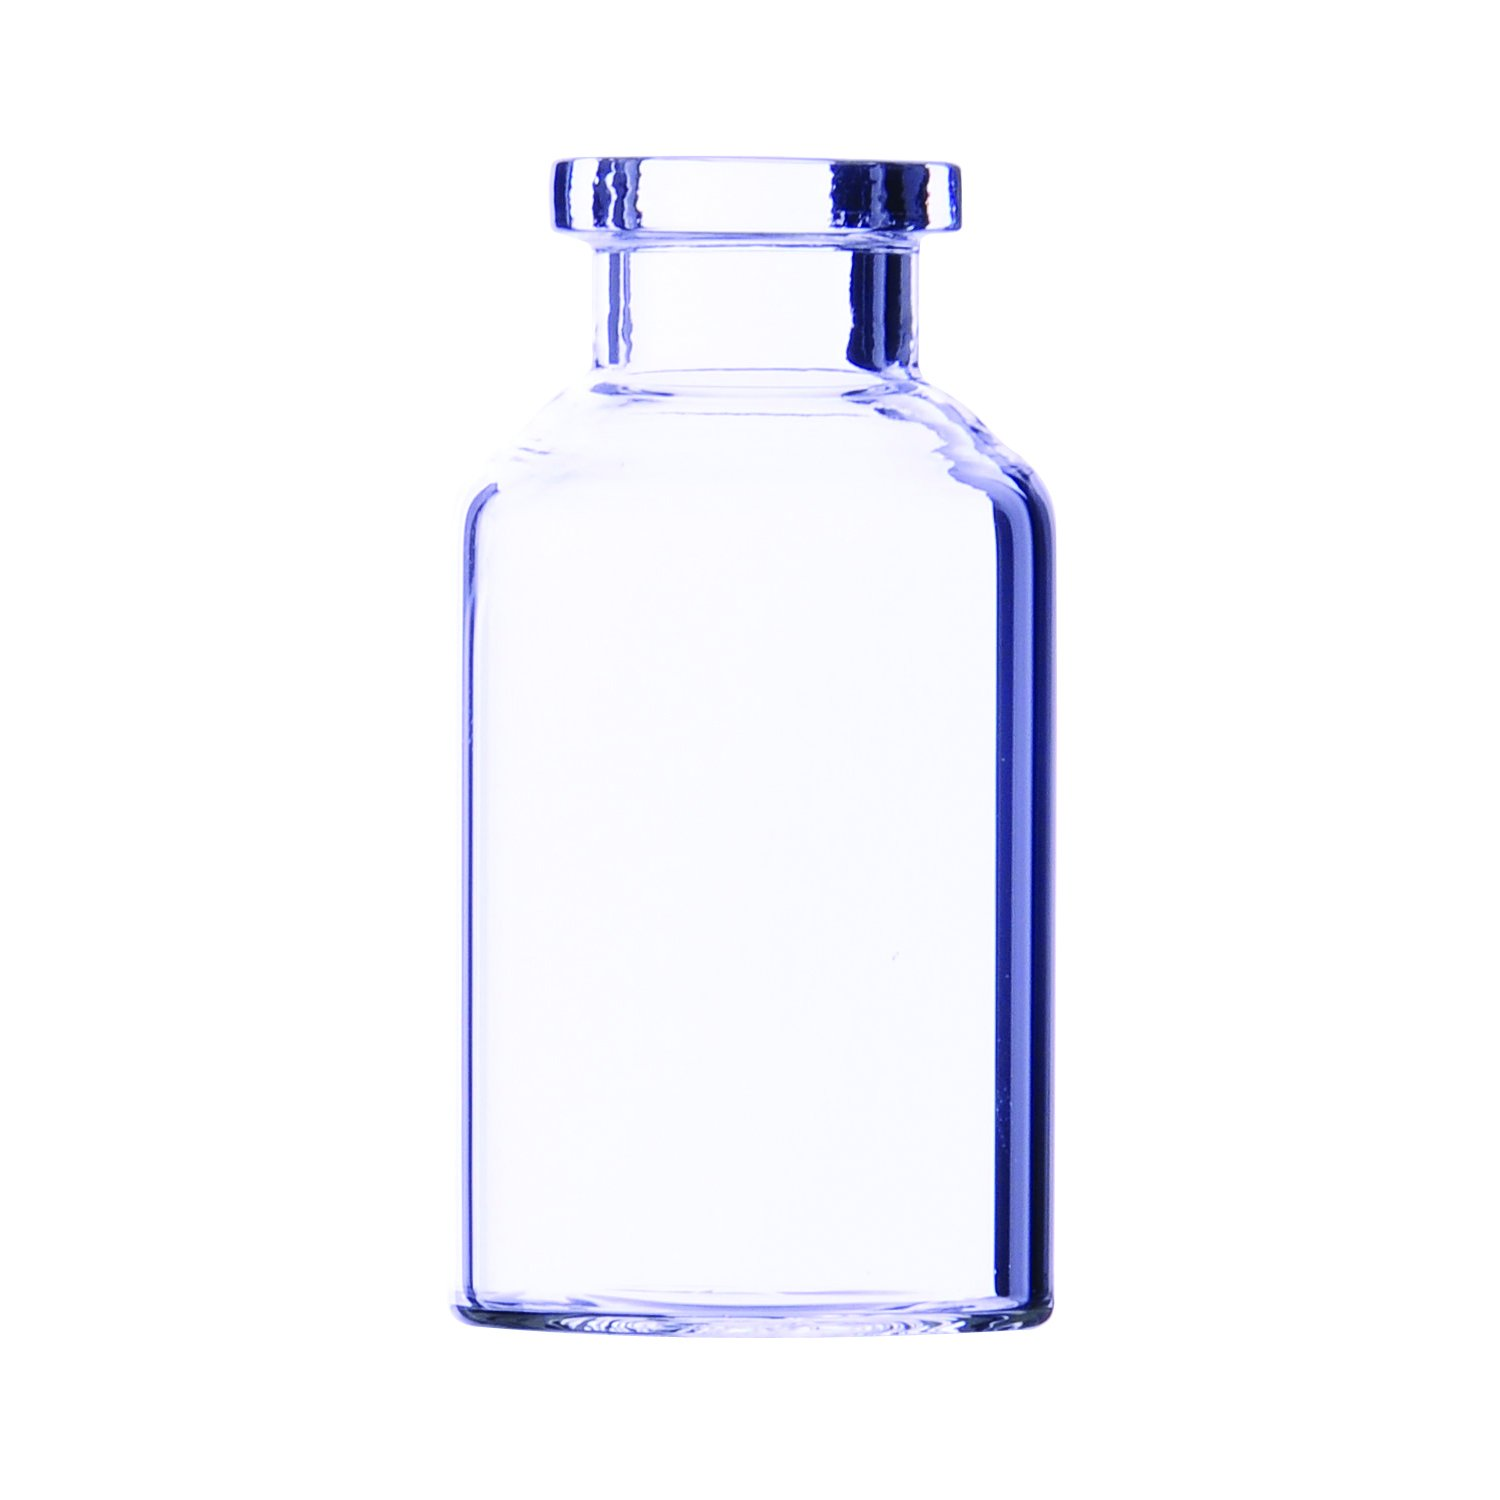 Wheaton 150870 Tubular Injection Vial, Type 1B Glass, 20 mL (Pack of 95) Scilabware